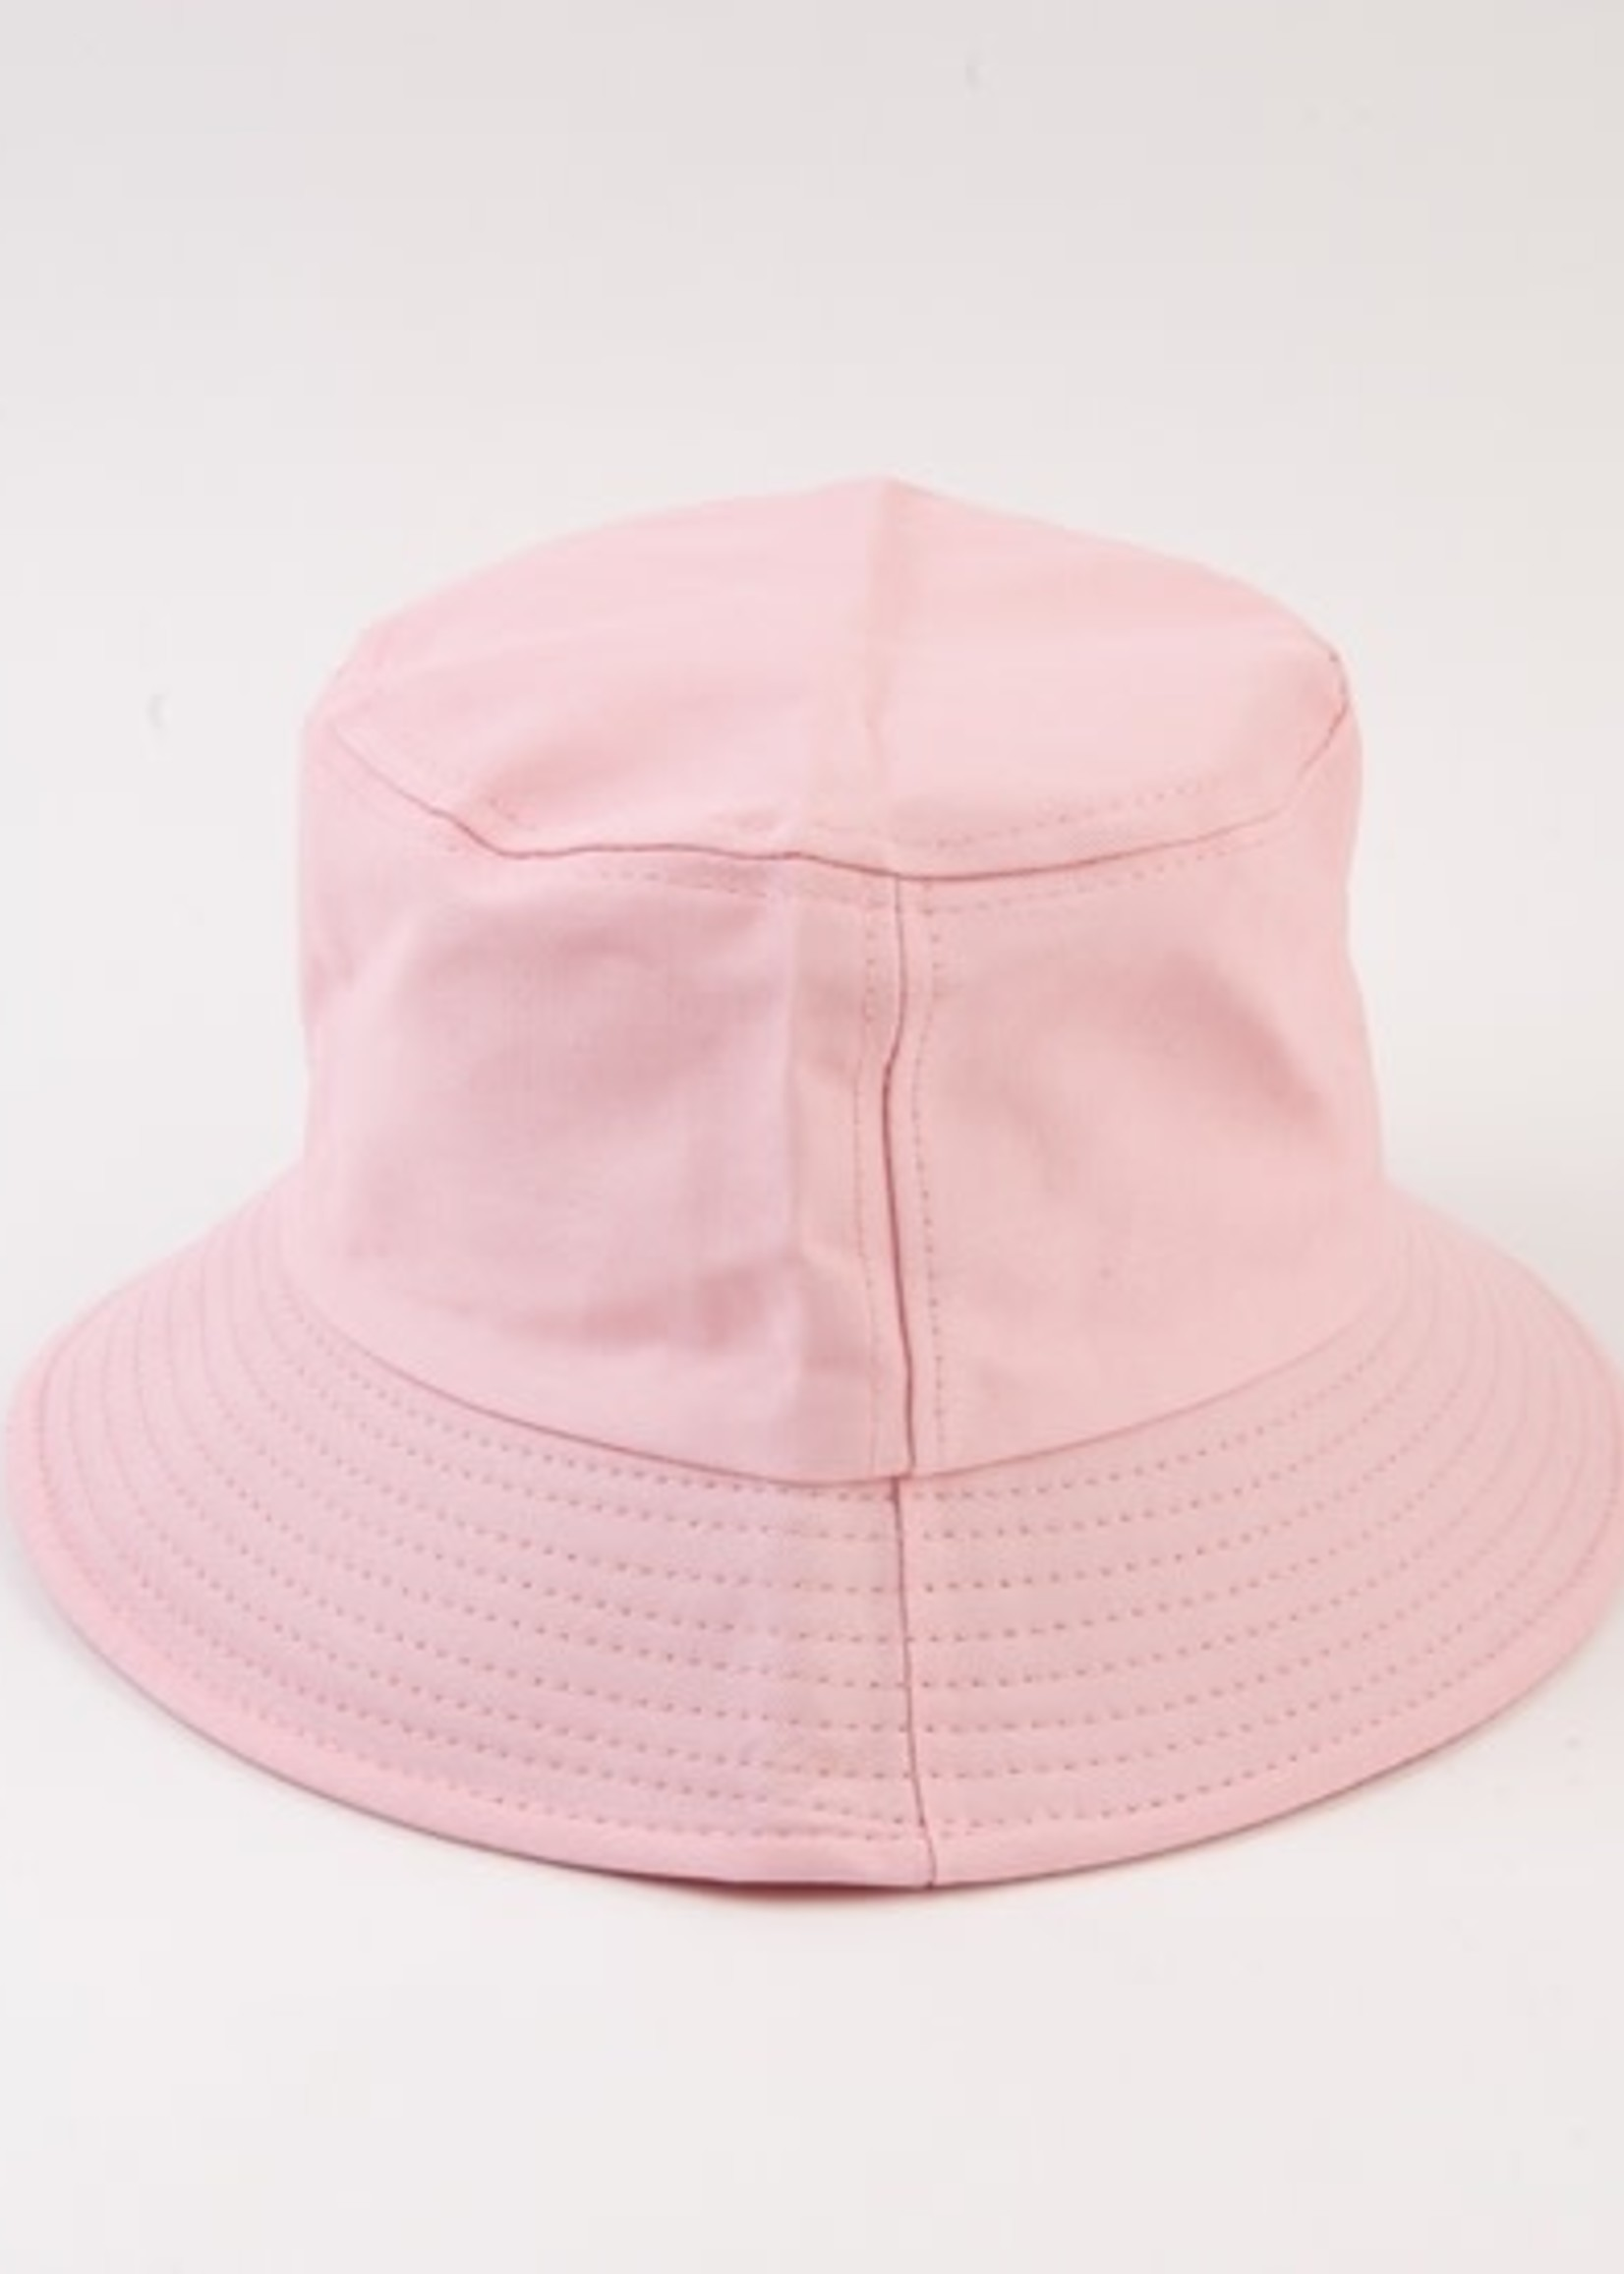 Lucca Couture ROCA CANVAS Bucket Hat - COTTON CANDY